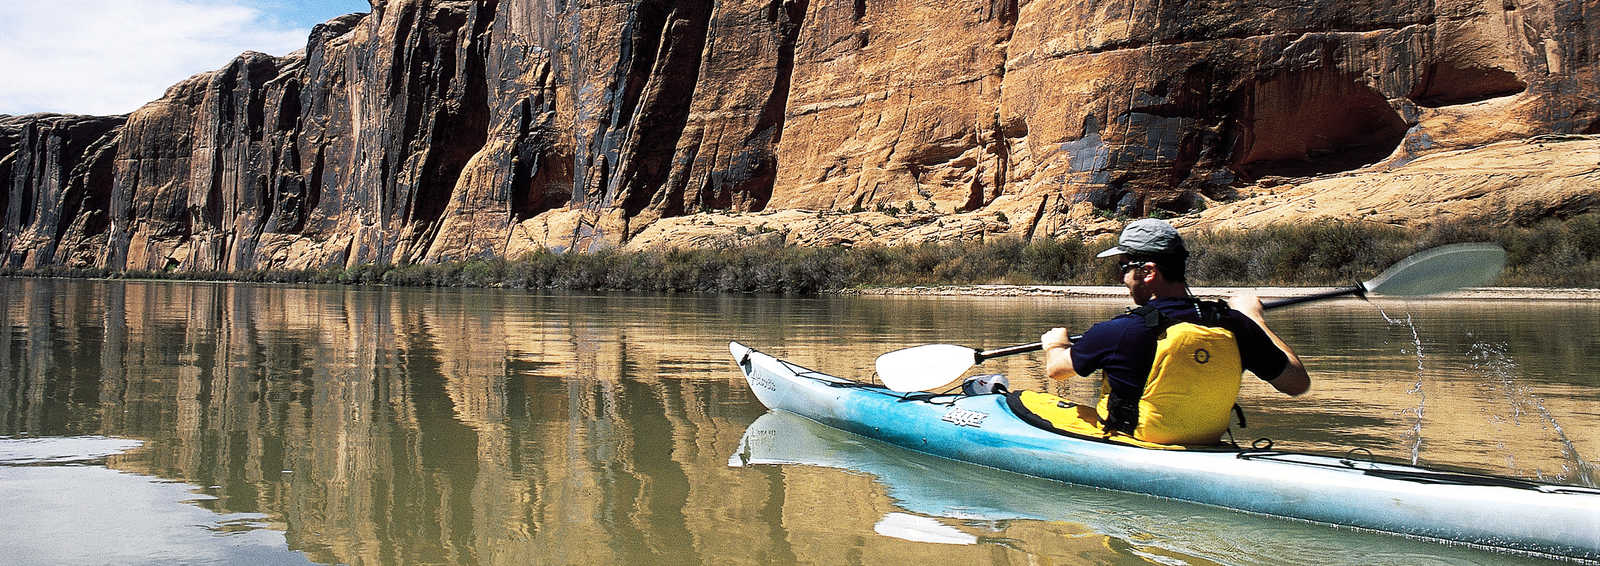 Kayaking on Colorado River, Utah